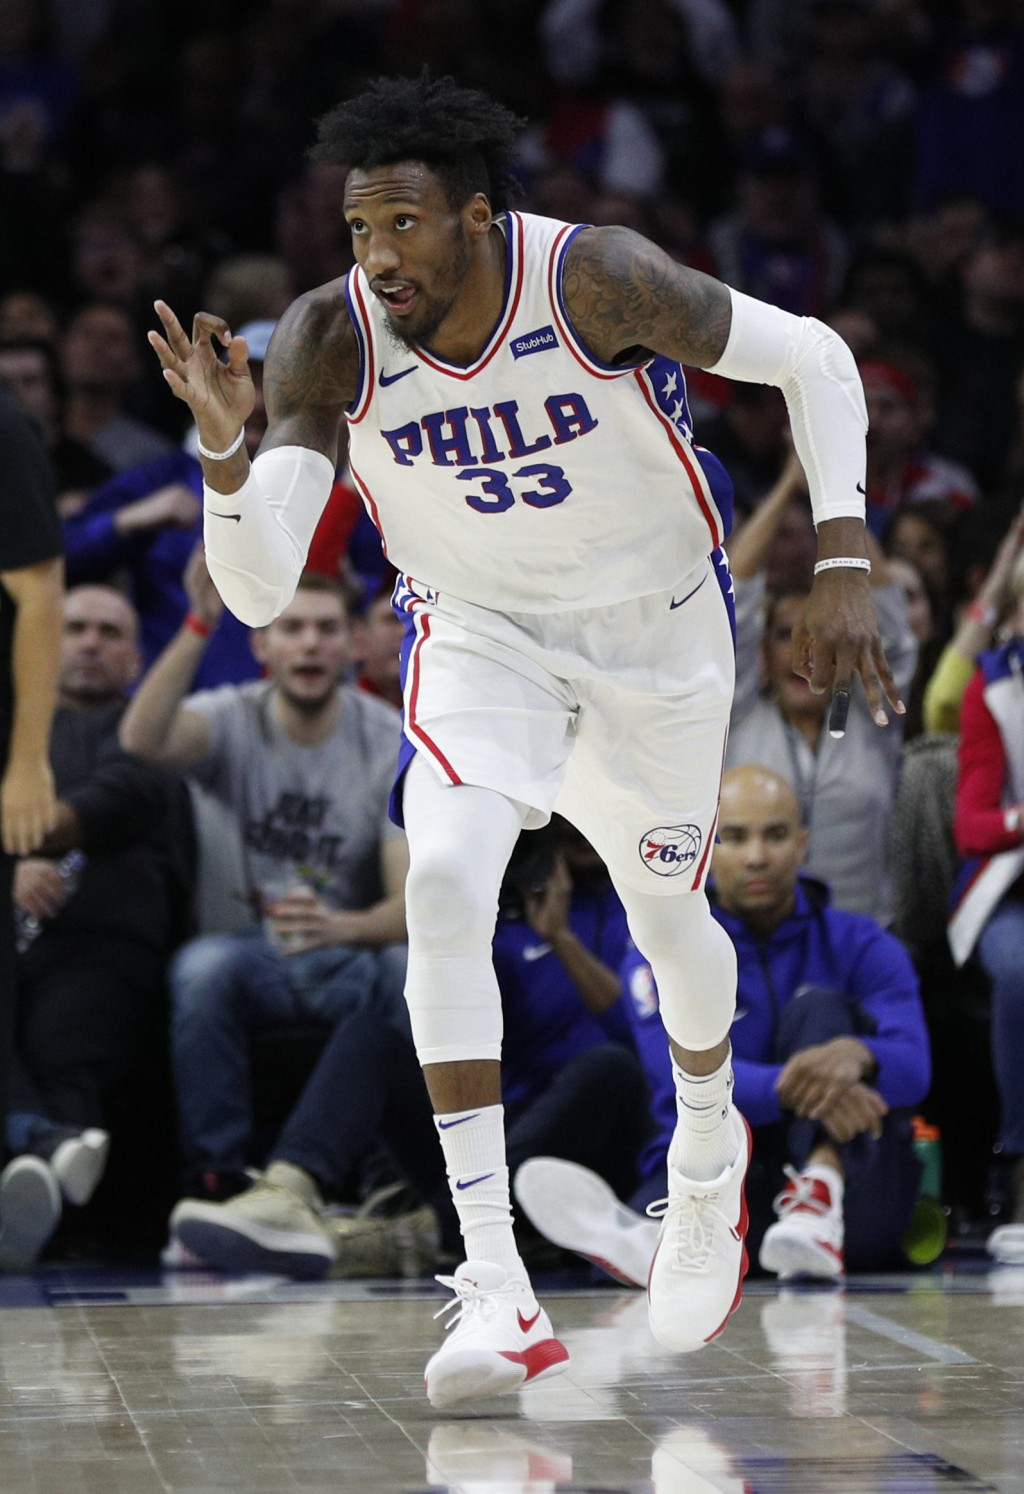 Philadelphia 76ers' Robert Covington reacts after his three-point basket during the first half of an NBA basketball game against the Minnesota Timberw...